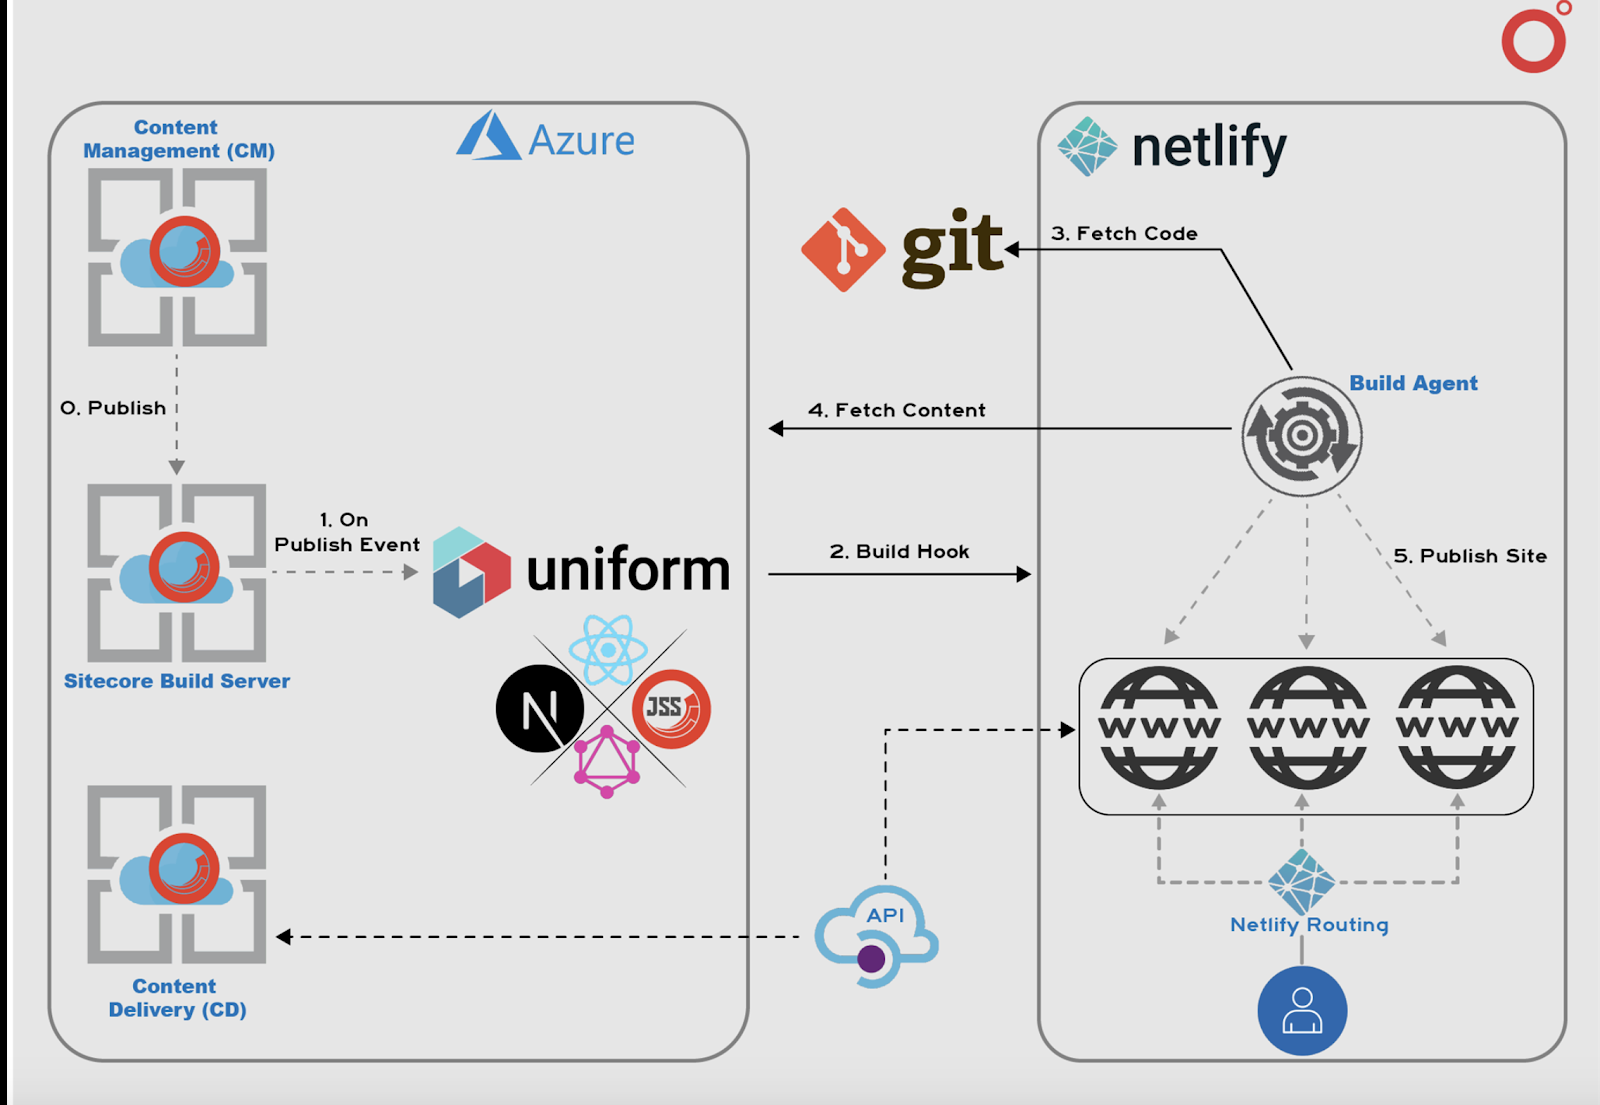 Klépierre's Sitecore on Jamstack Architecture - server-side rendering, Netlify as CDN, and Uniform connector to seamlessly hook Sitecore and Netlify